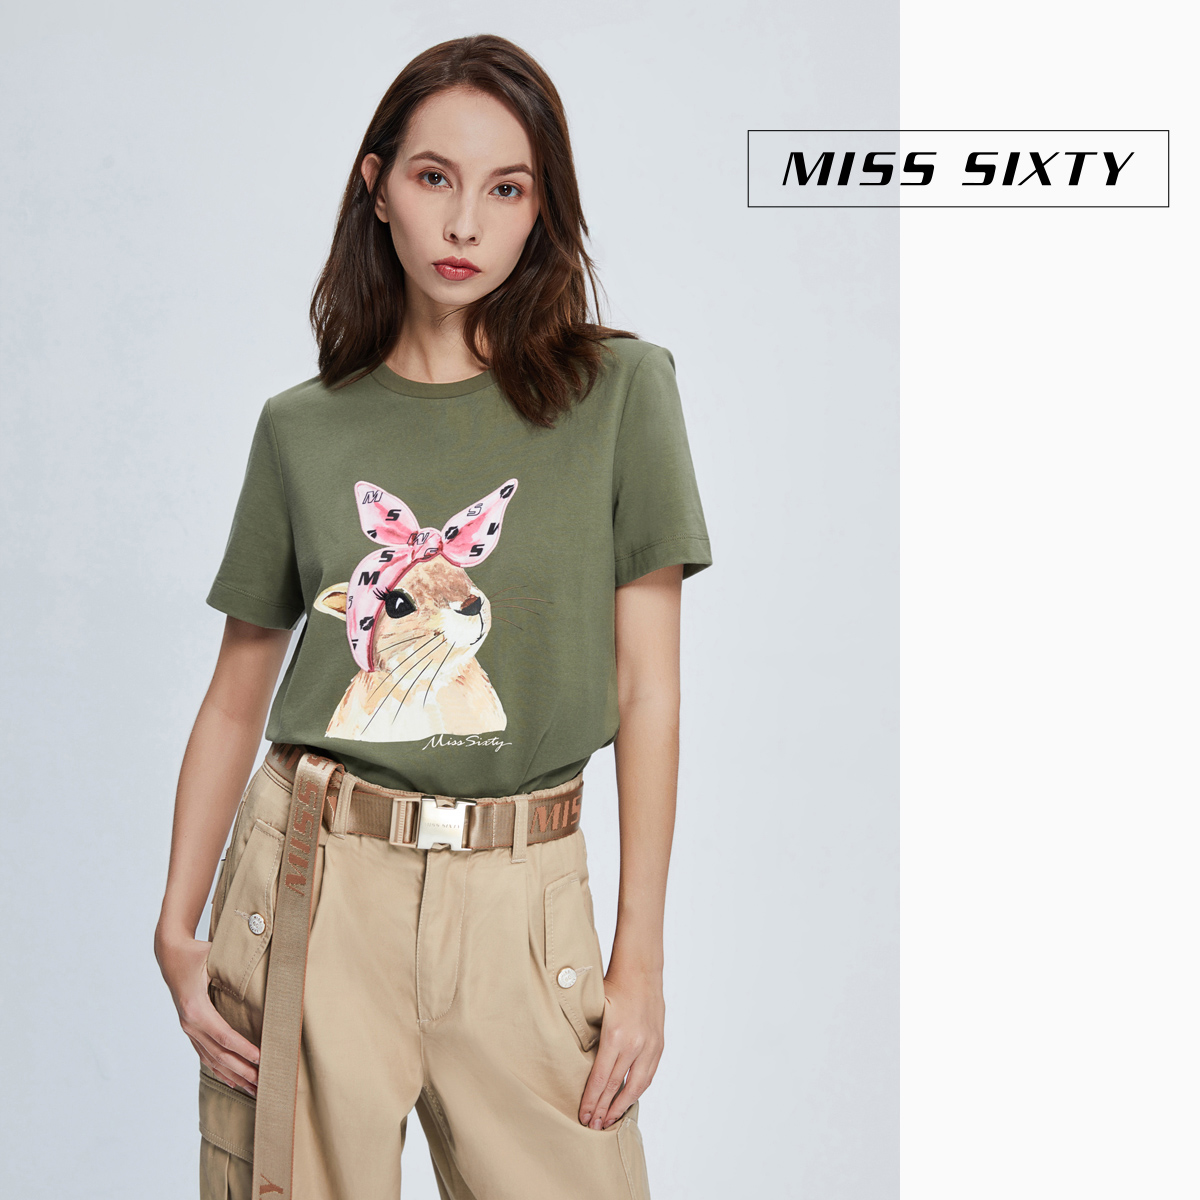 Miss sixty2020 spring new pure cotton printing fashion top round neck loose short sleeve T-shirt for women